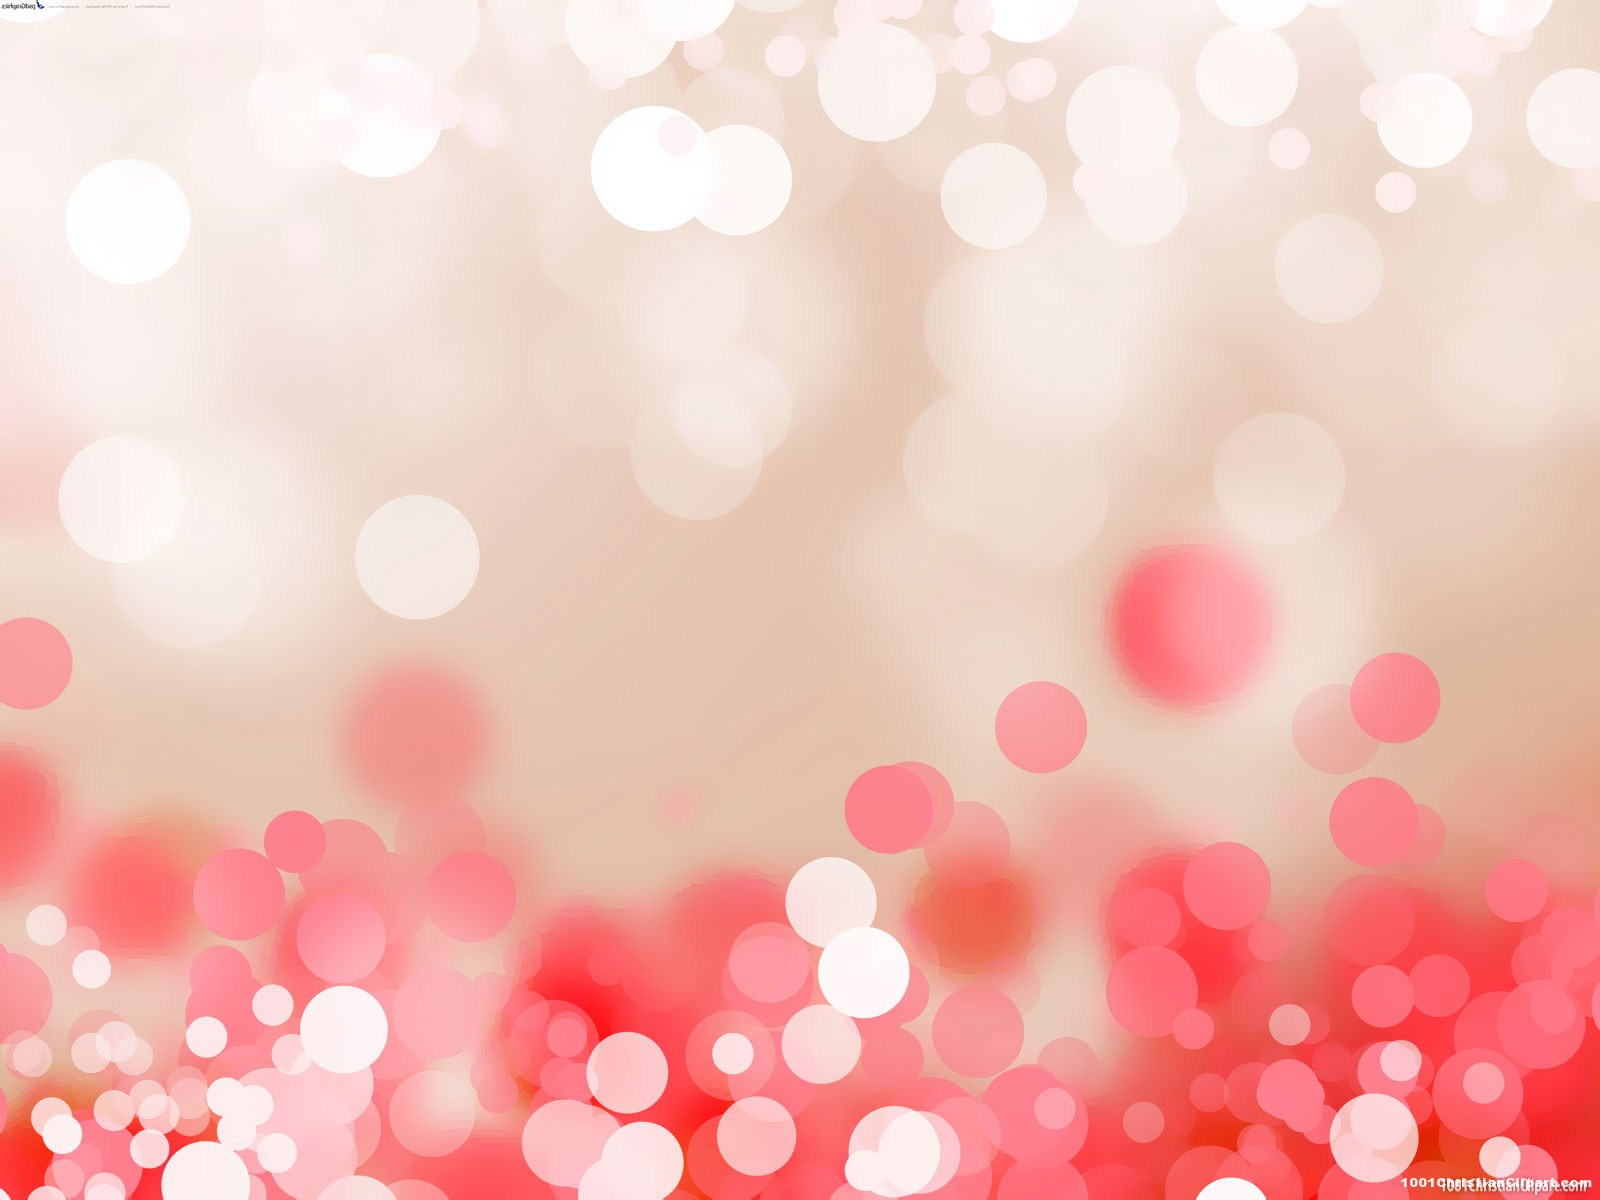 Free download Bokeh Red Pink Background for Powerpoint 1001.